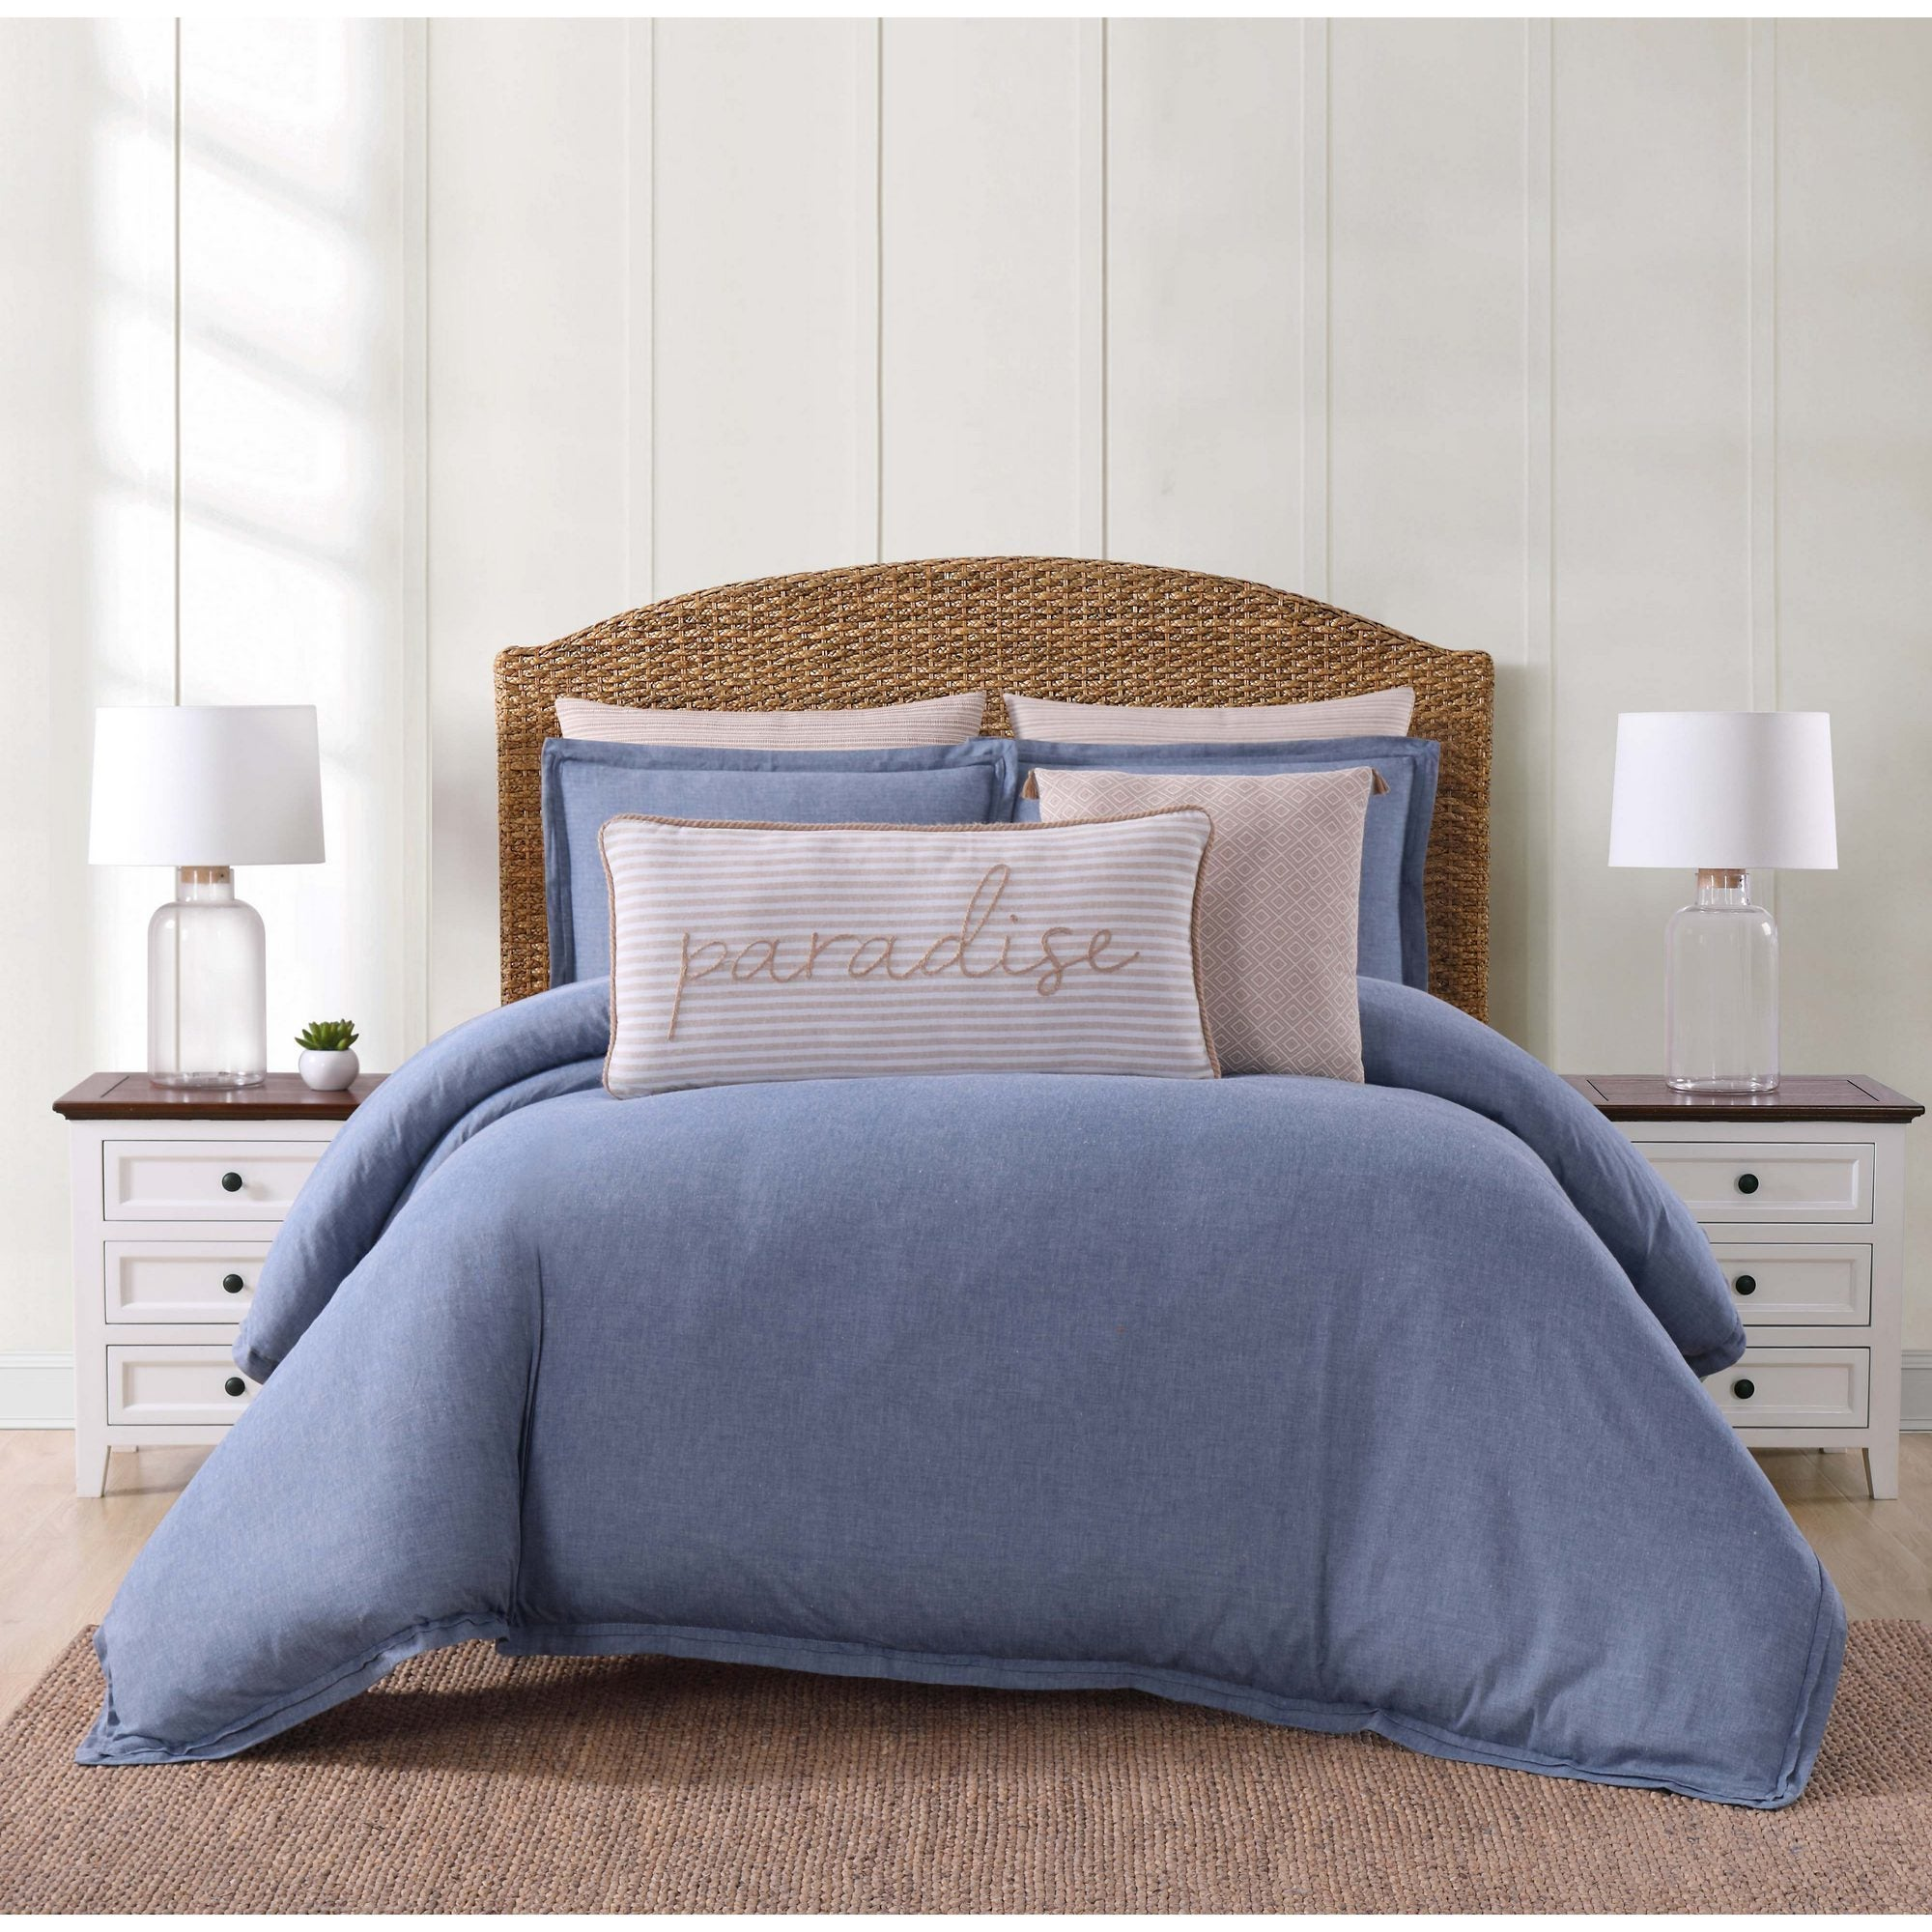 cotton chambray duvet free today product overstock cover oceanfront bedding shipping bath set coast resort piece